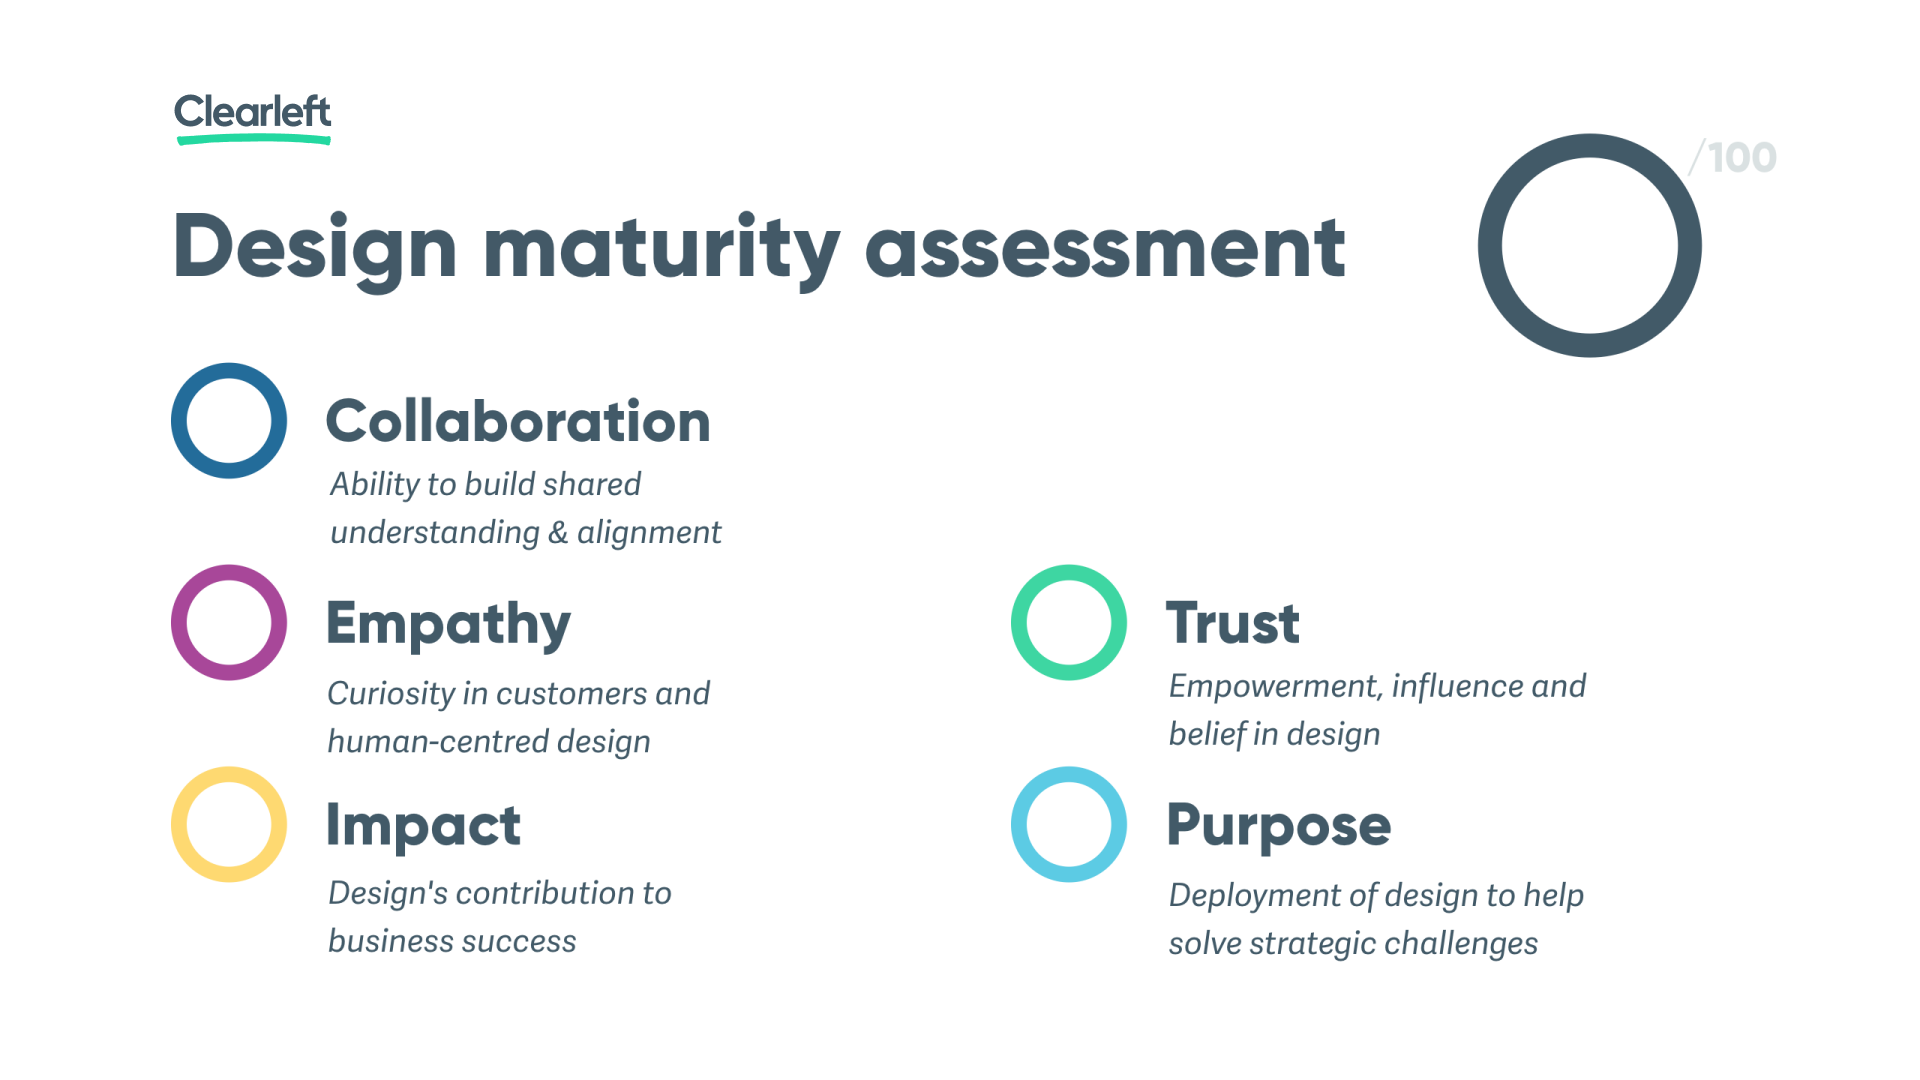 The Design Maturity Assessment showing the five factors and a circle for the score out of 100